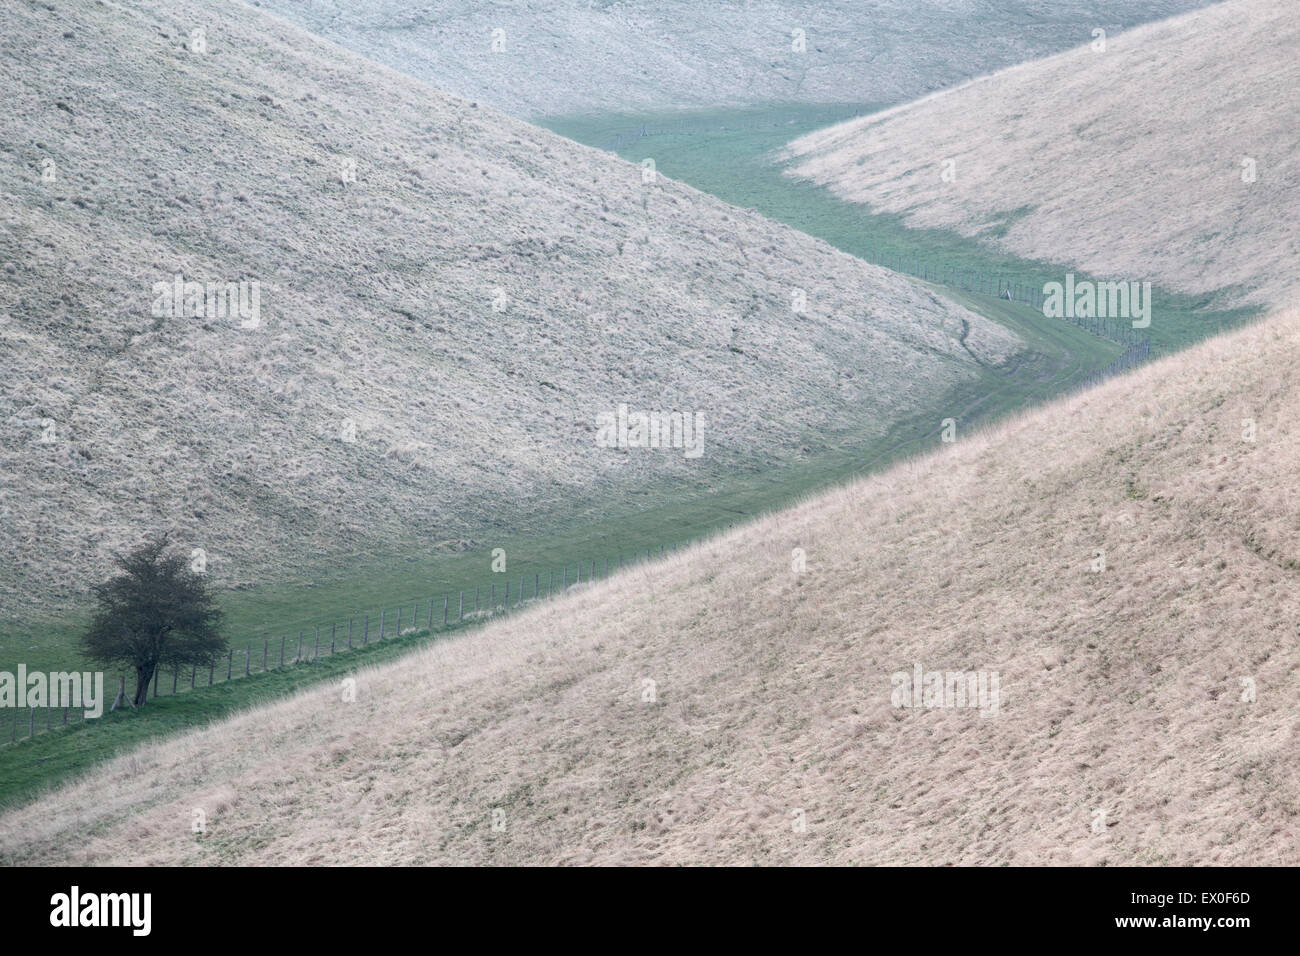 Zigzagging footpath through a valley in the Yorkshire Wolds, East Yorkshire, UK - Stock Image